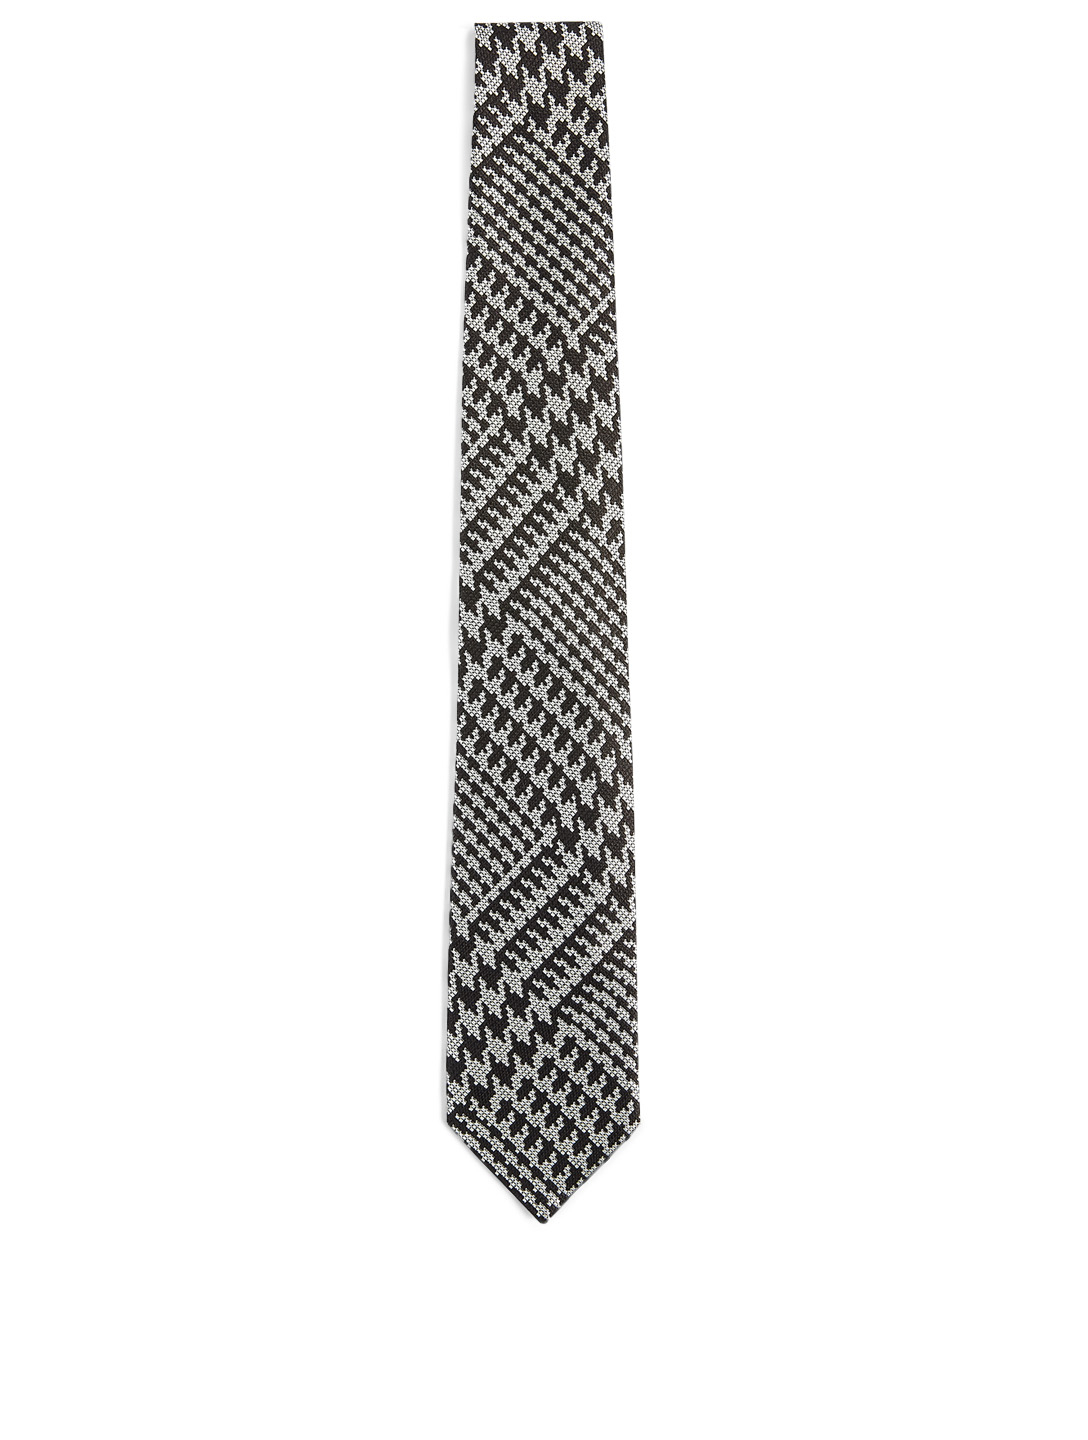 TOM FORD Silk Tie In Houndstooth Print Men's Black